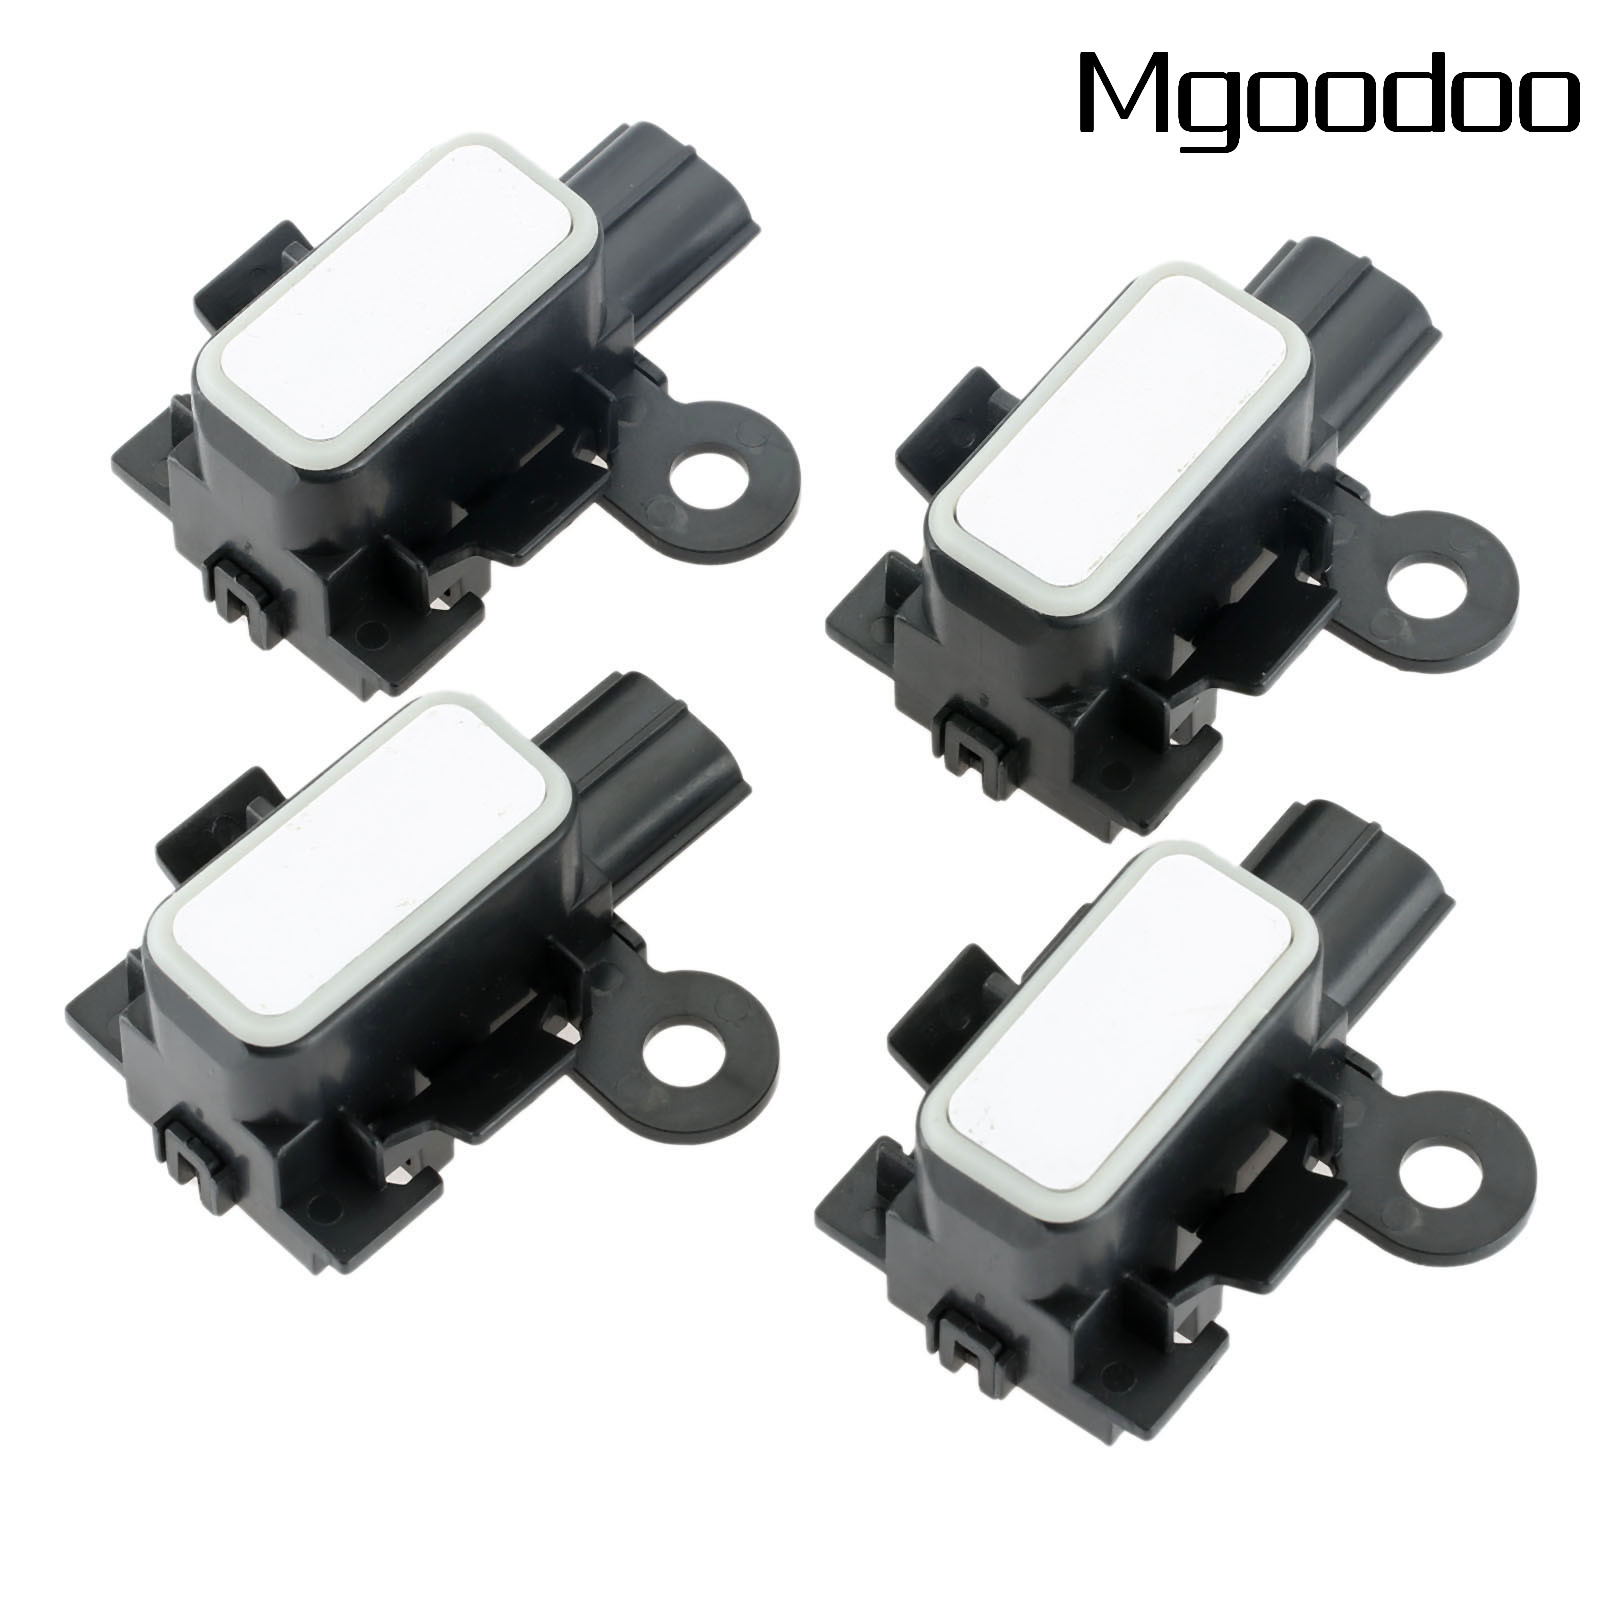 4x PDC Ultrasonic Parking Radar Sensor For Lexus GS300 GS350 GS430 GS450h GS460 89341-44150-B2 89341-44150 Parktronic Sensor NEW цена 2017